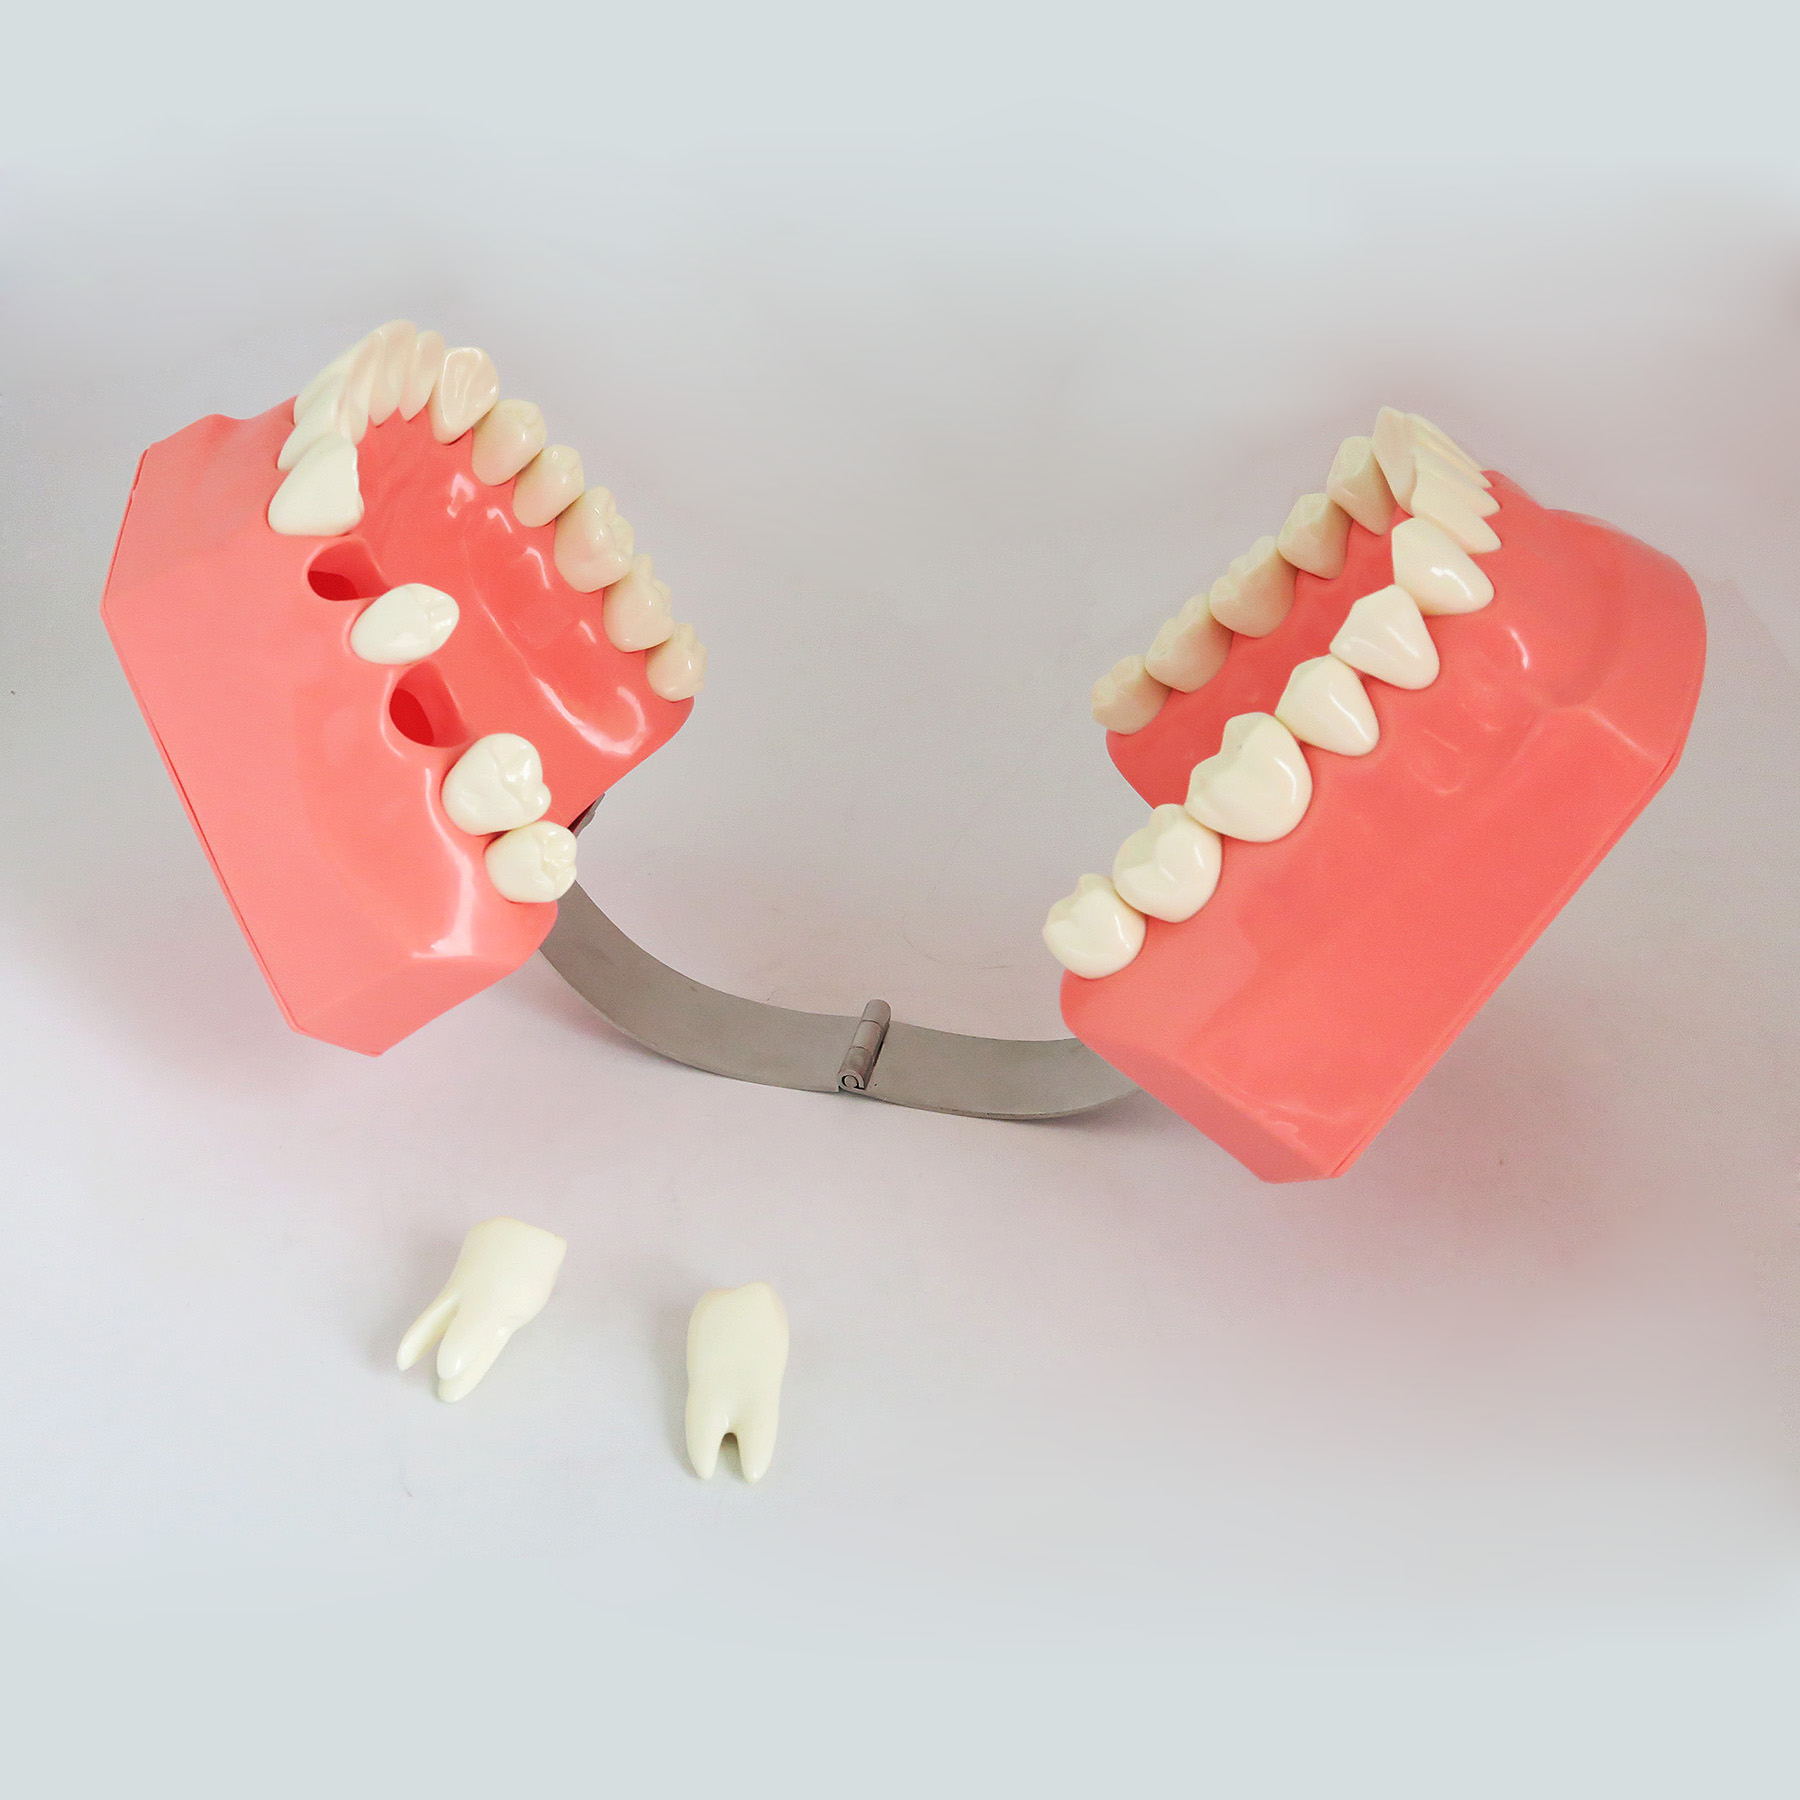 TM-S1 Two Times Tooth-brushing  Model